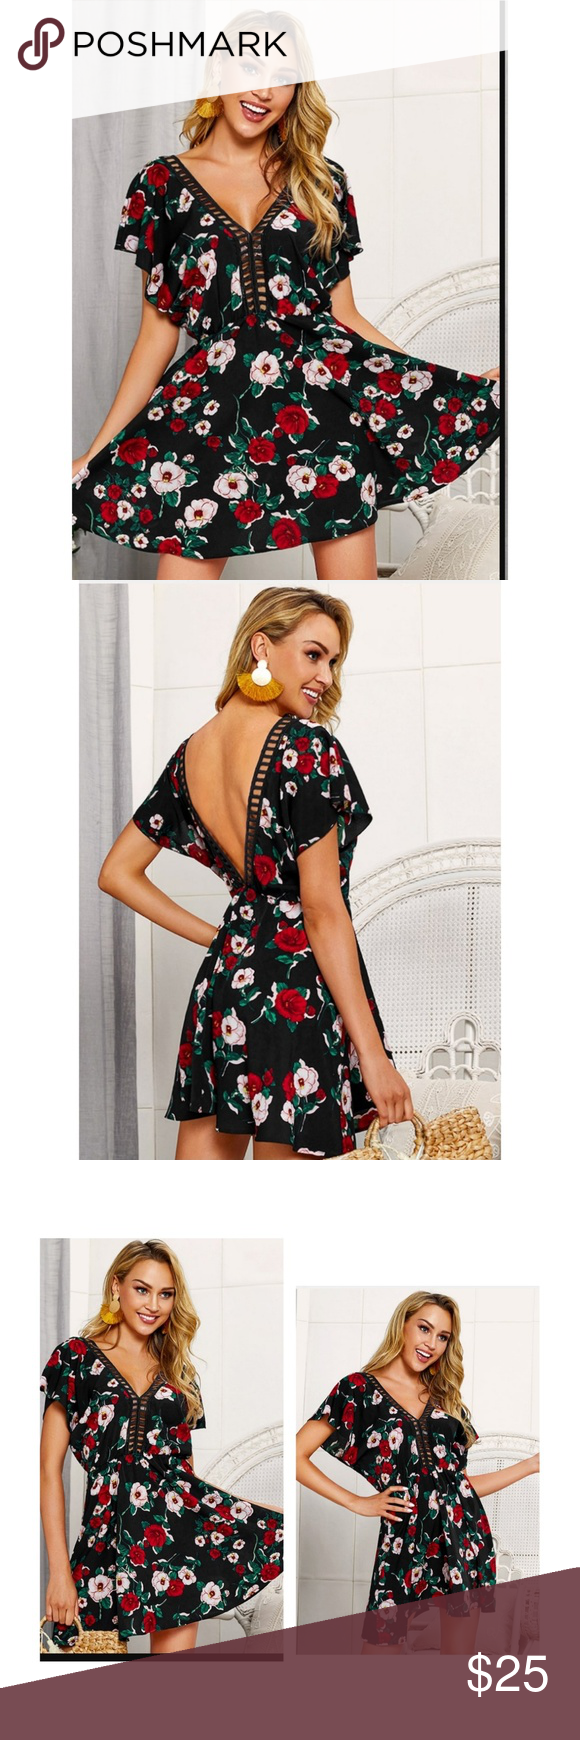 NIP Contrast Crochet Floral Print Backless Dress Gorgeous floral print backless dress with crocheted detail on the bust and back with flutter sleeves beautifully lightweight ordered wrong size from shein  Size xl  Reasonable offers and questions welcome SHEIN Dresses #shortbacklessdress